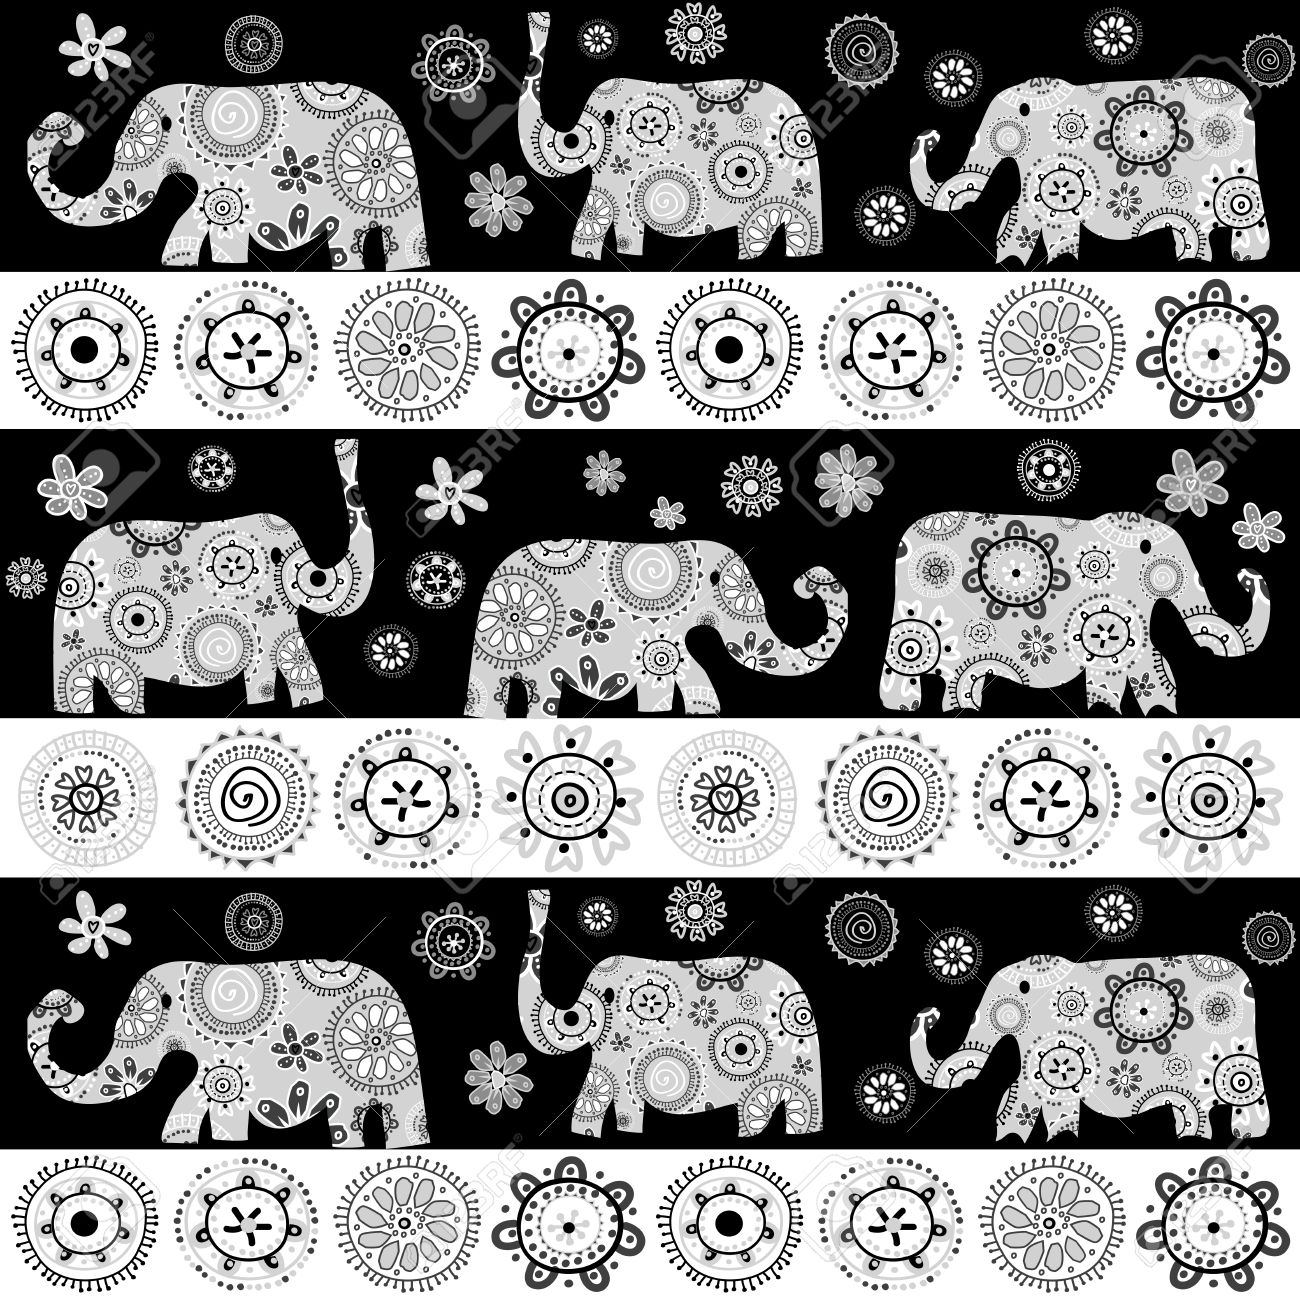 Ethnic Floral Patterned Elephants Background Royalty Free Cliparts